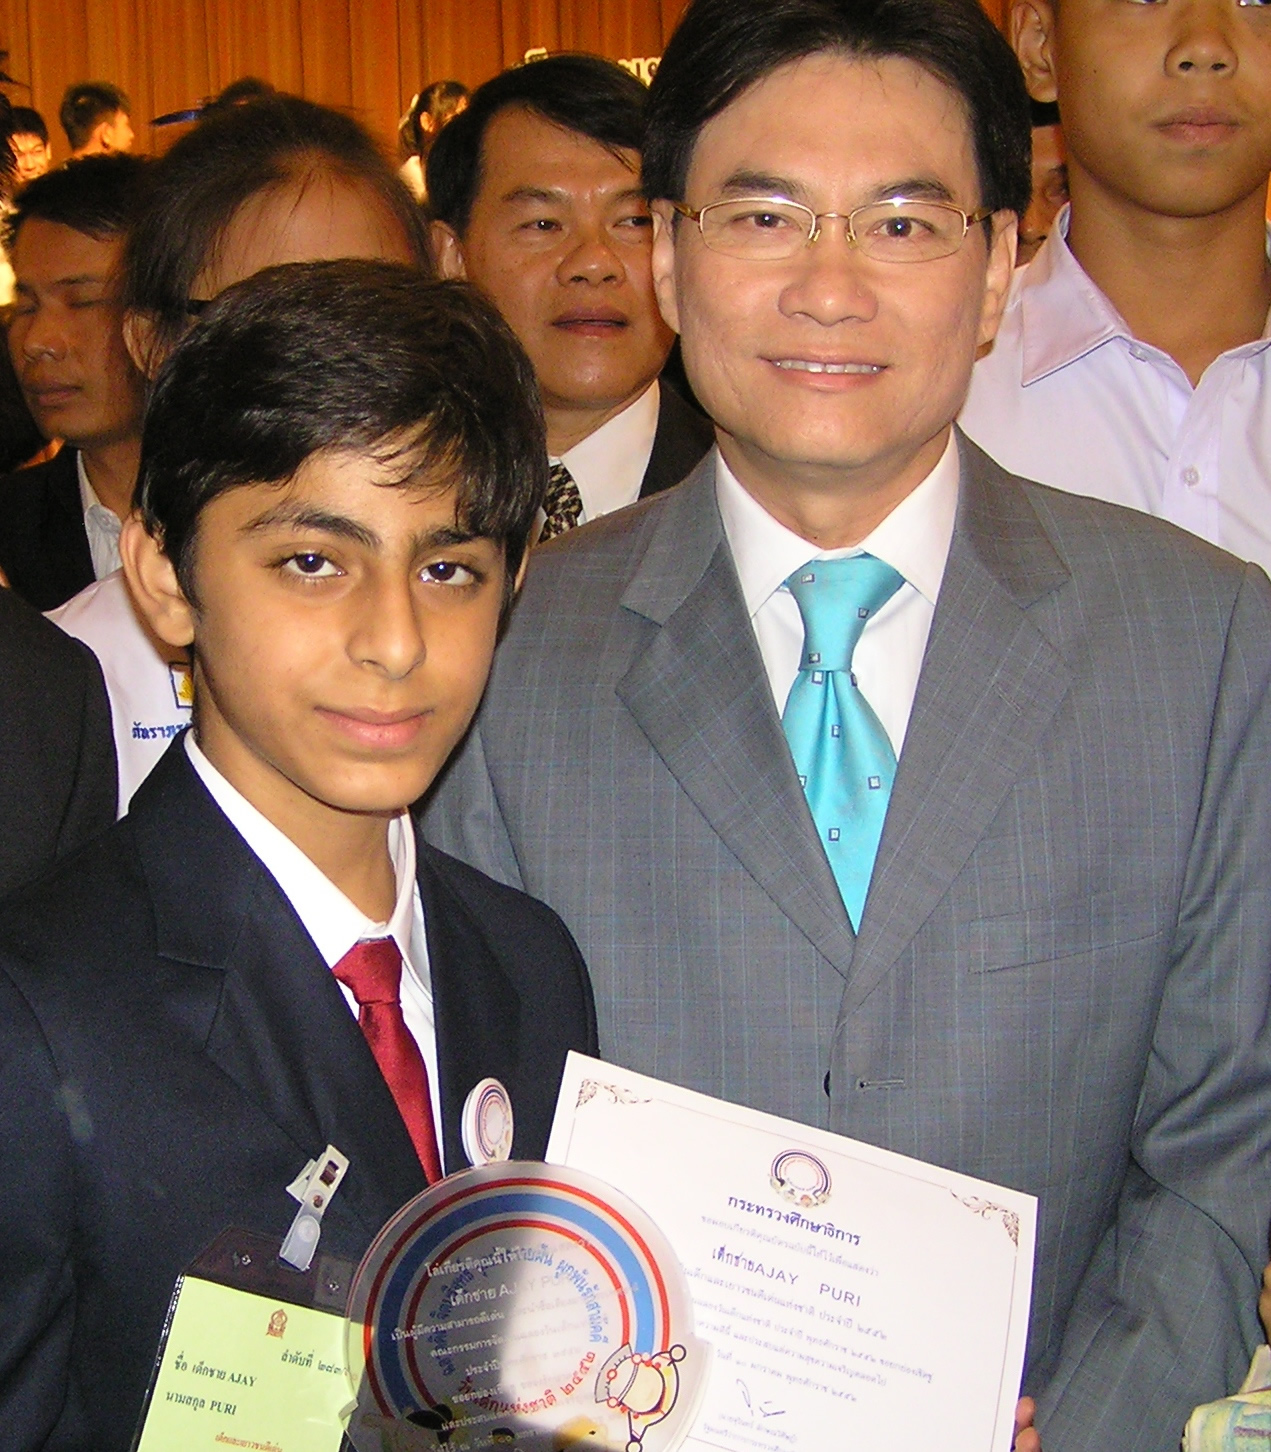 Ajay with Education Minister of Thailand